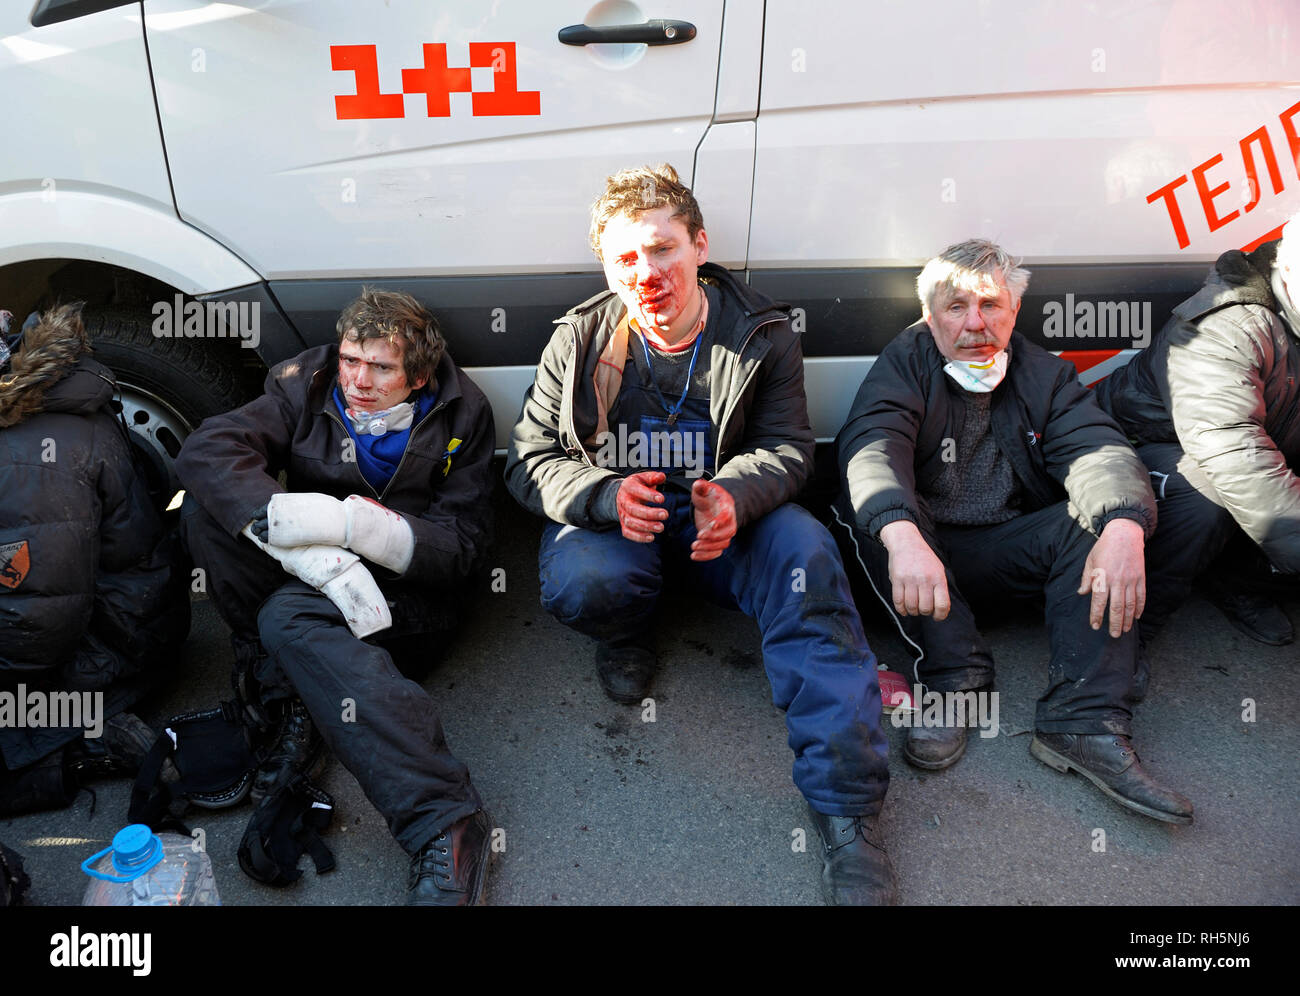 Protesters - victims of police violence on Grushevskogo street, paramedics, an ambulance. Revolution of Dignity.February 18, 2014. Kiev, Ukraine - Stock Image